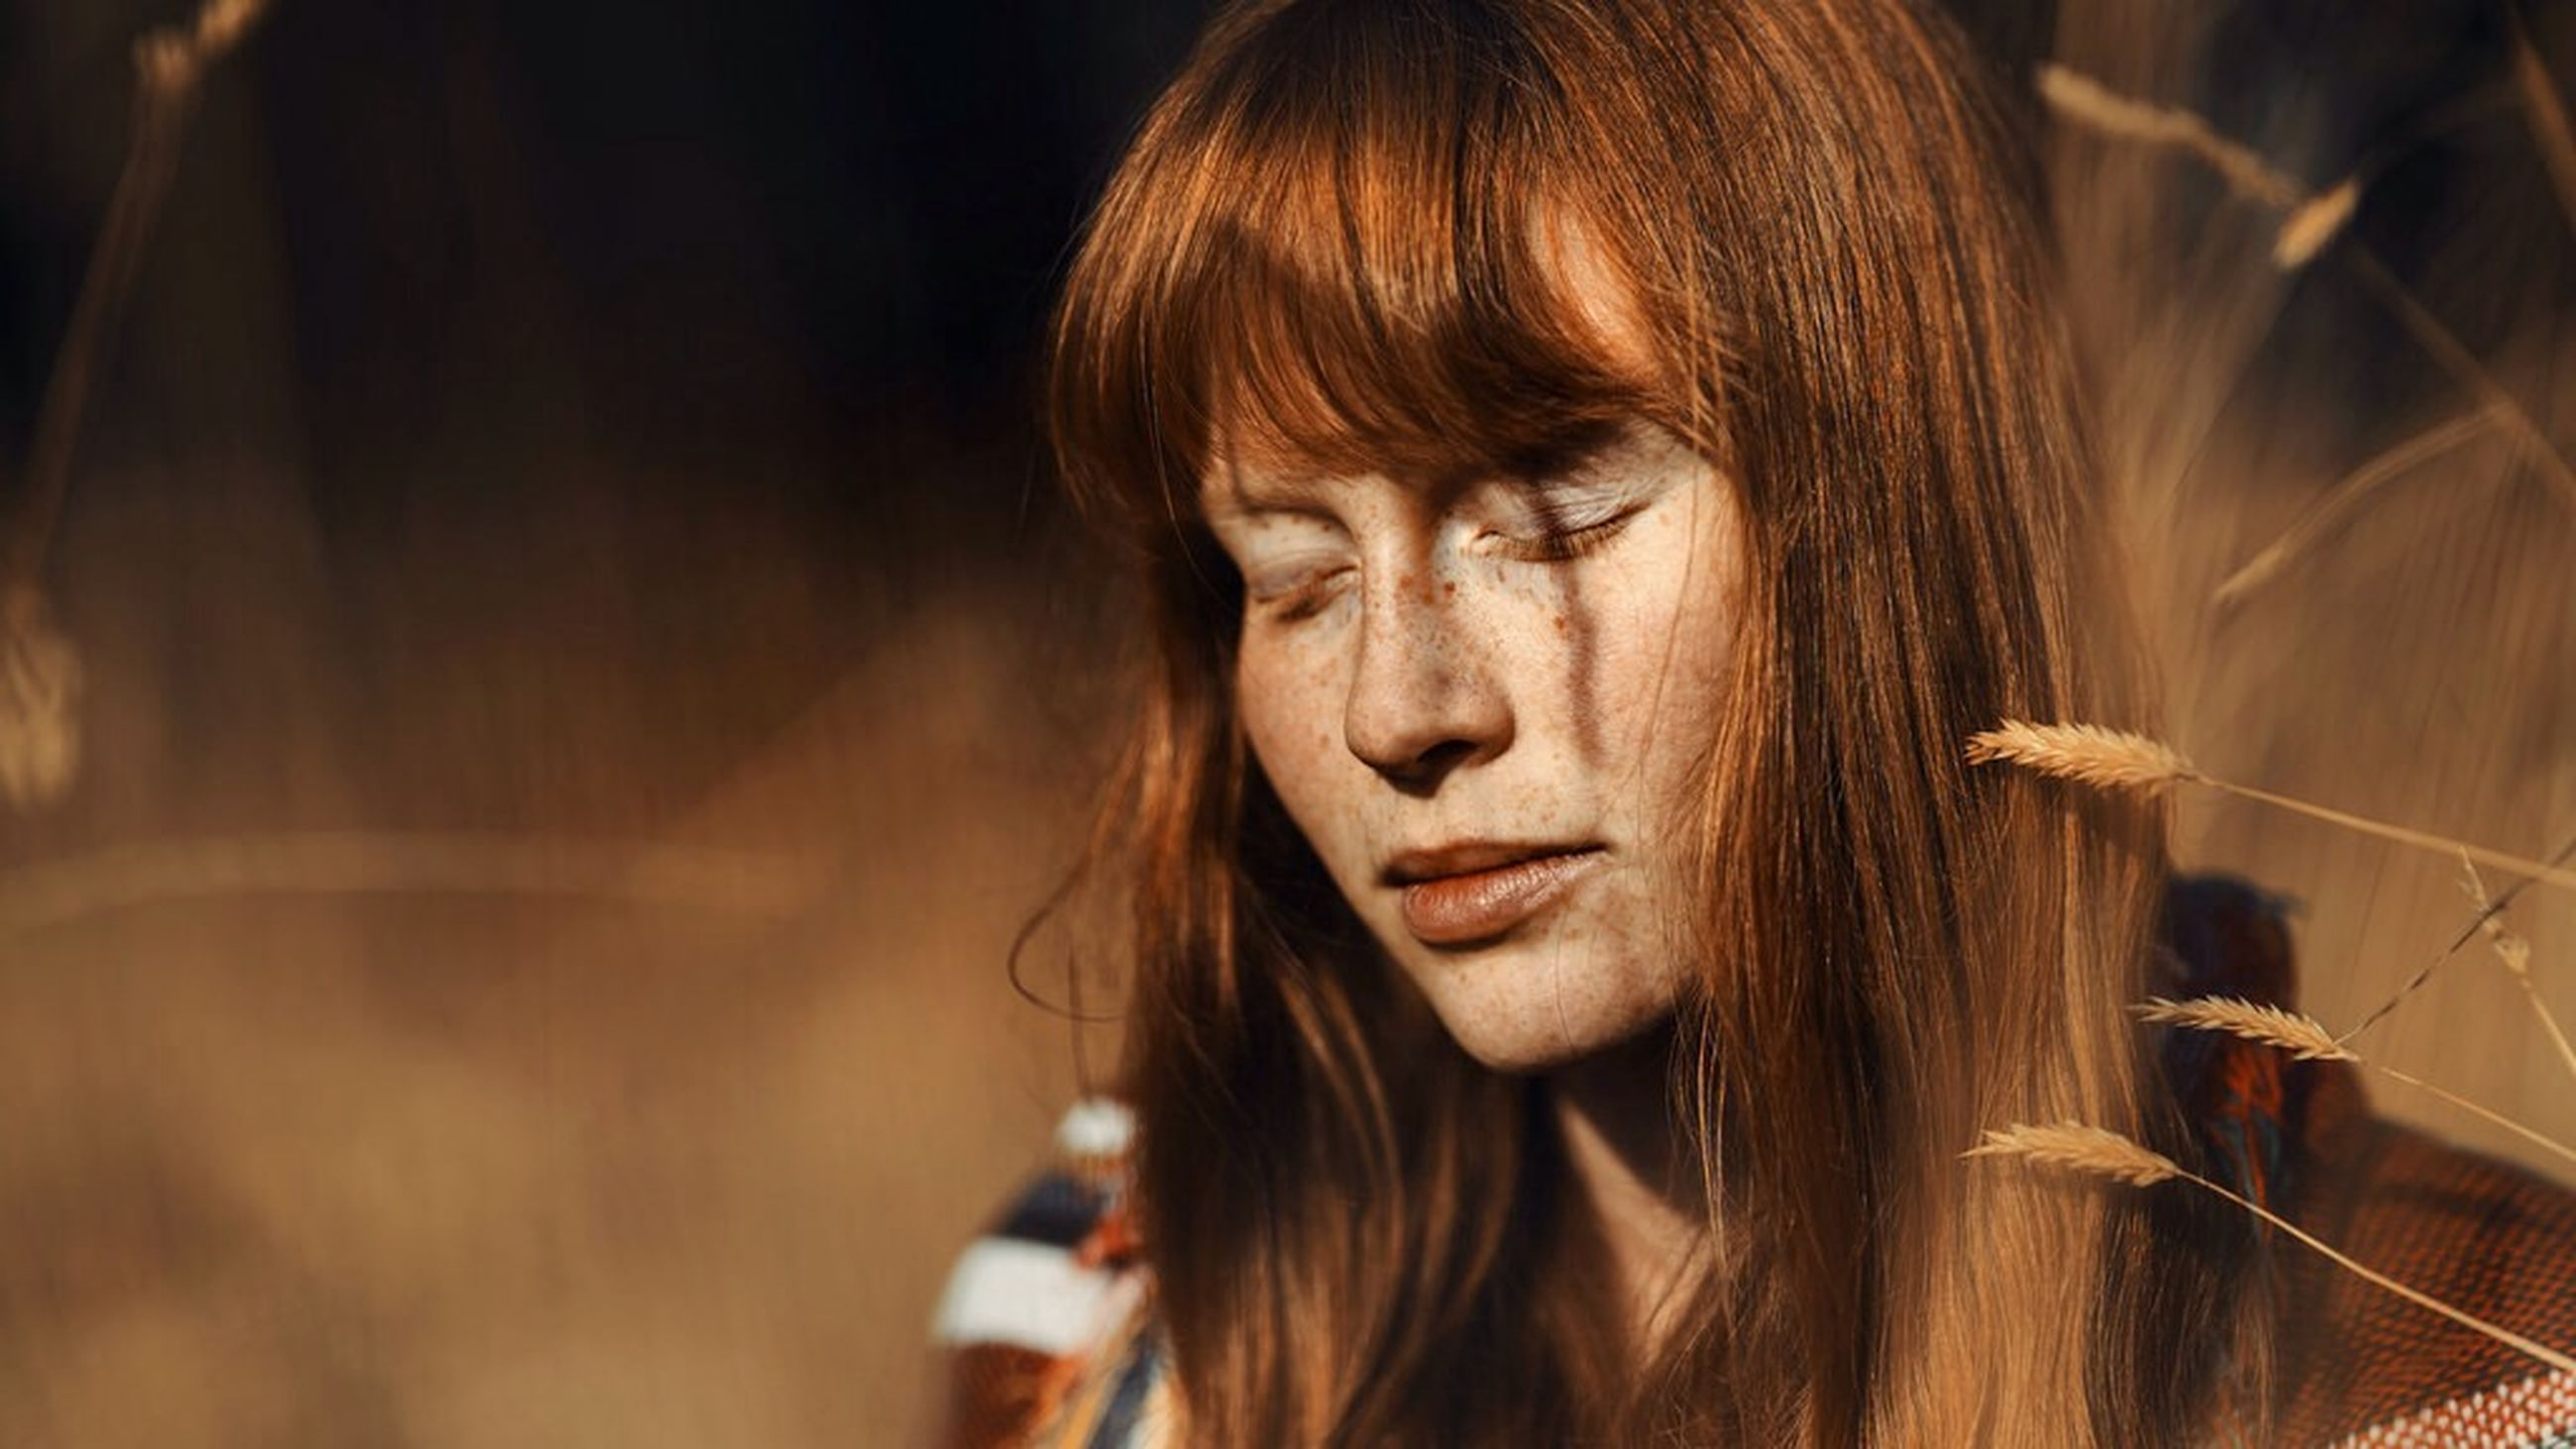 young adult, long hair, headshot, person, young women, lifestyles, leisure activity, focus on foreground, human hair, close-up, front view, contemplation, brown hair, portrait, looking away, human face